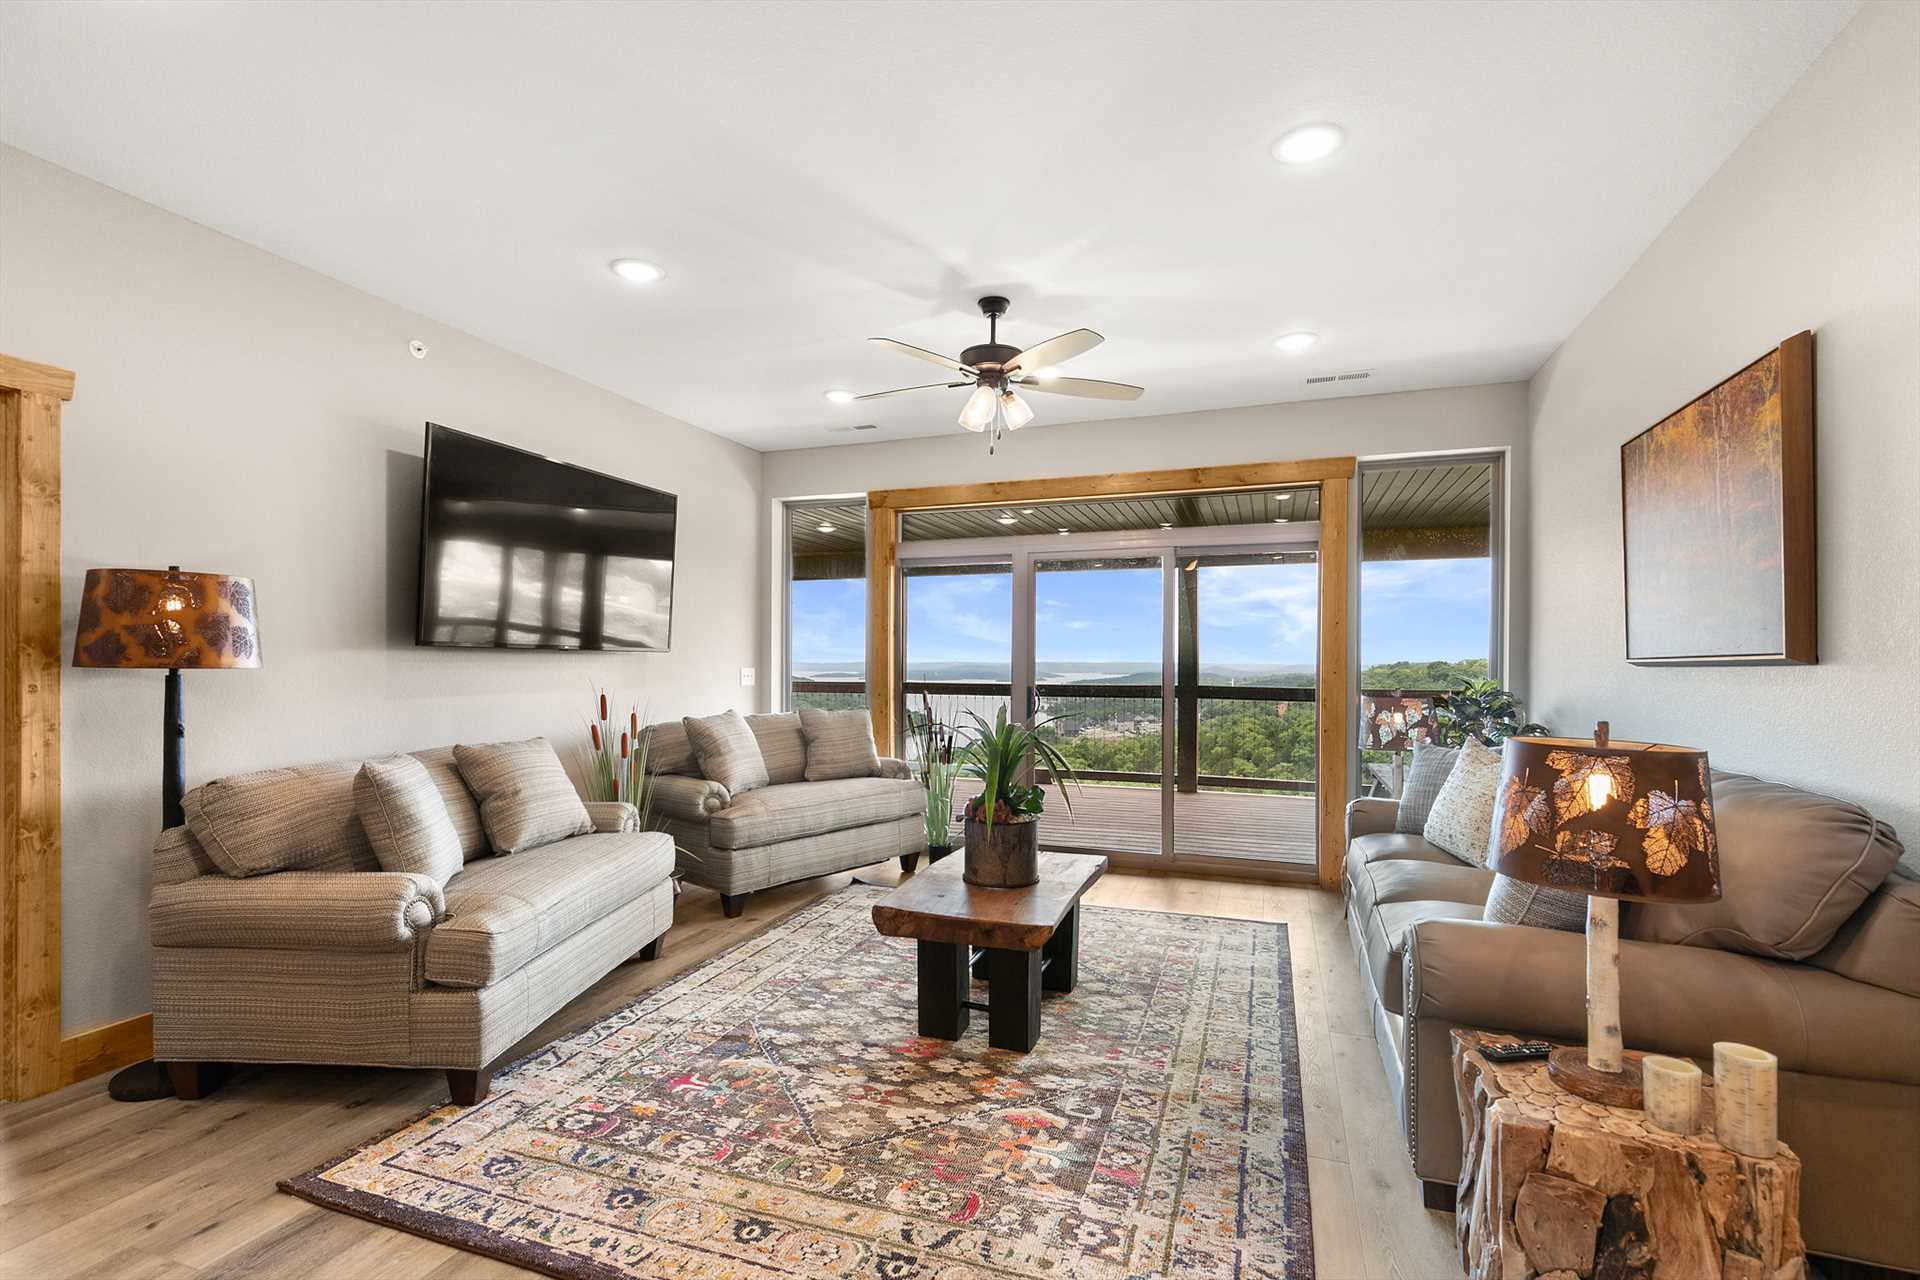 This second living space not only has amazing views, but als